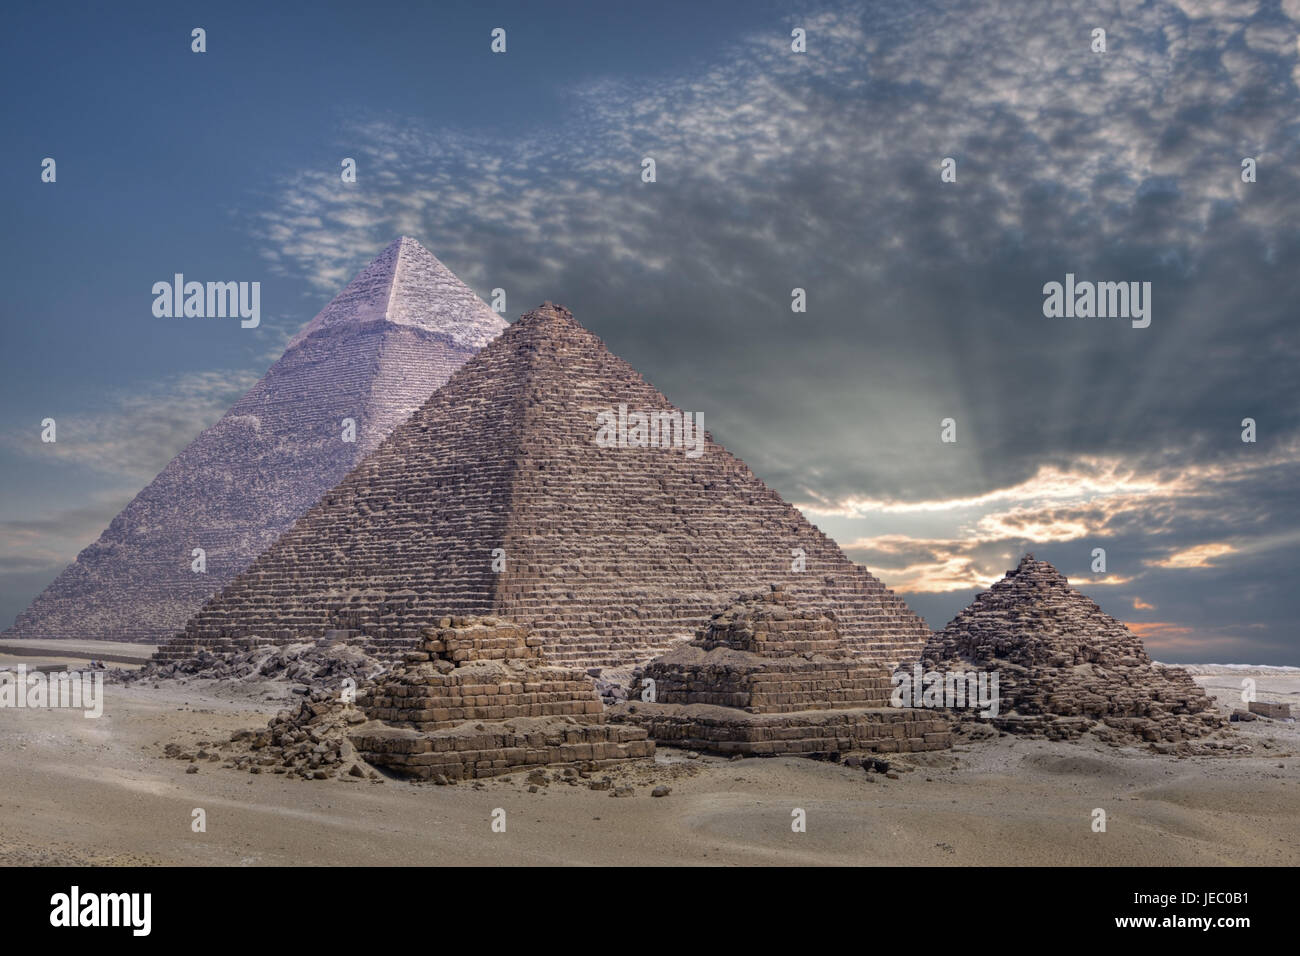 Pyramides de Gizeh, Le Caire, Égypte, Photo Stock